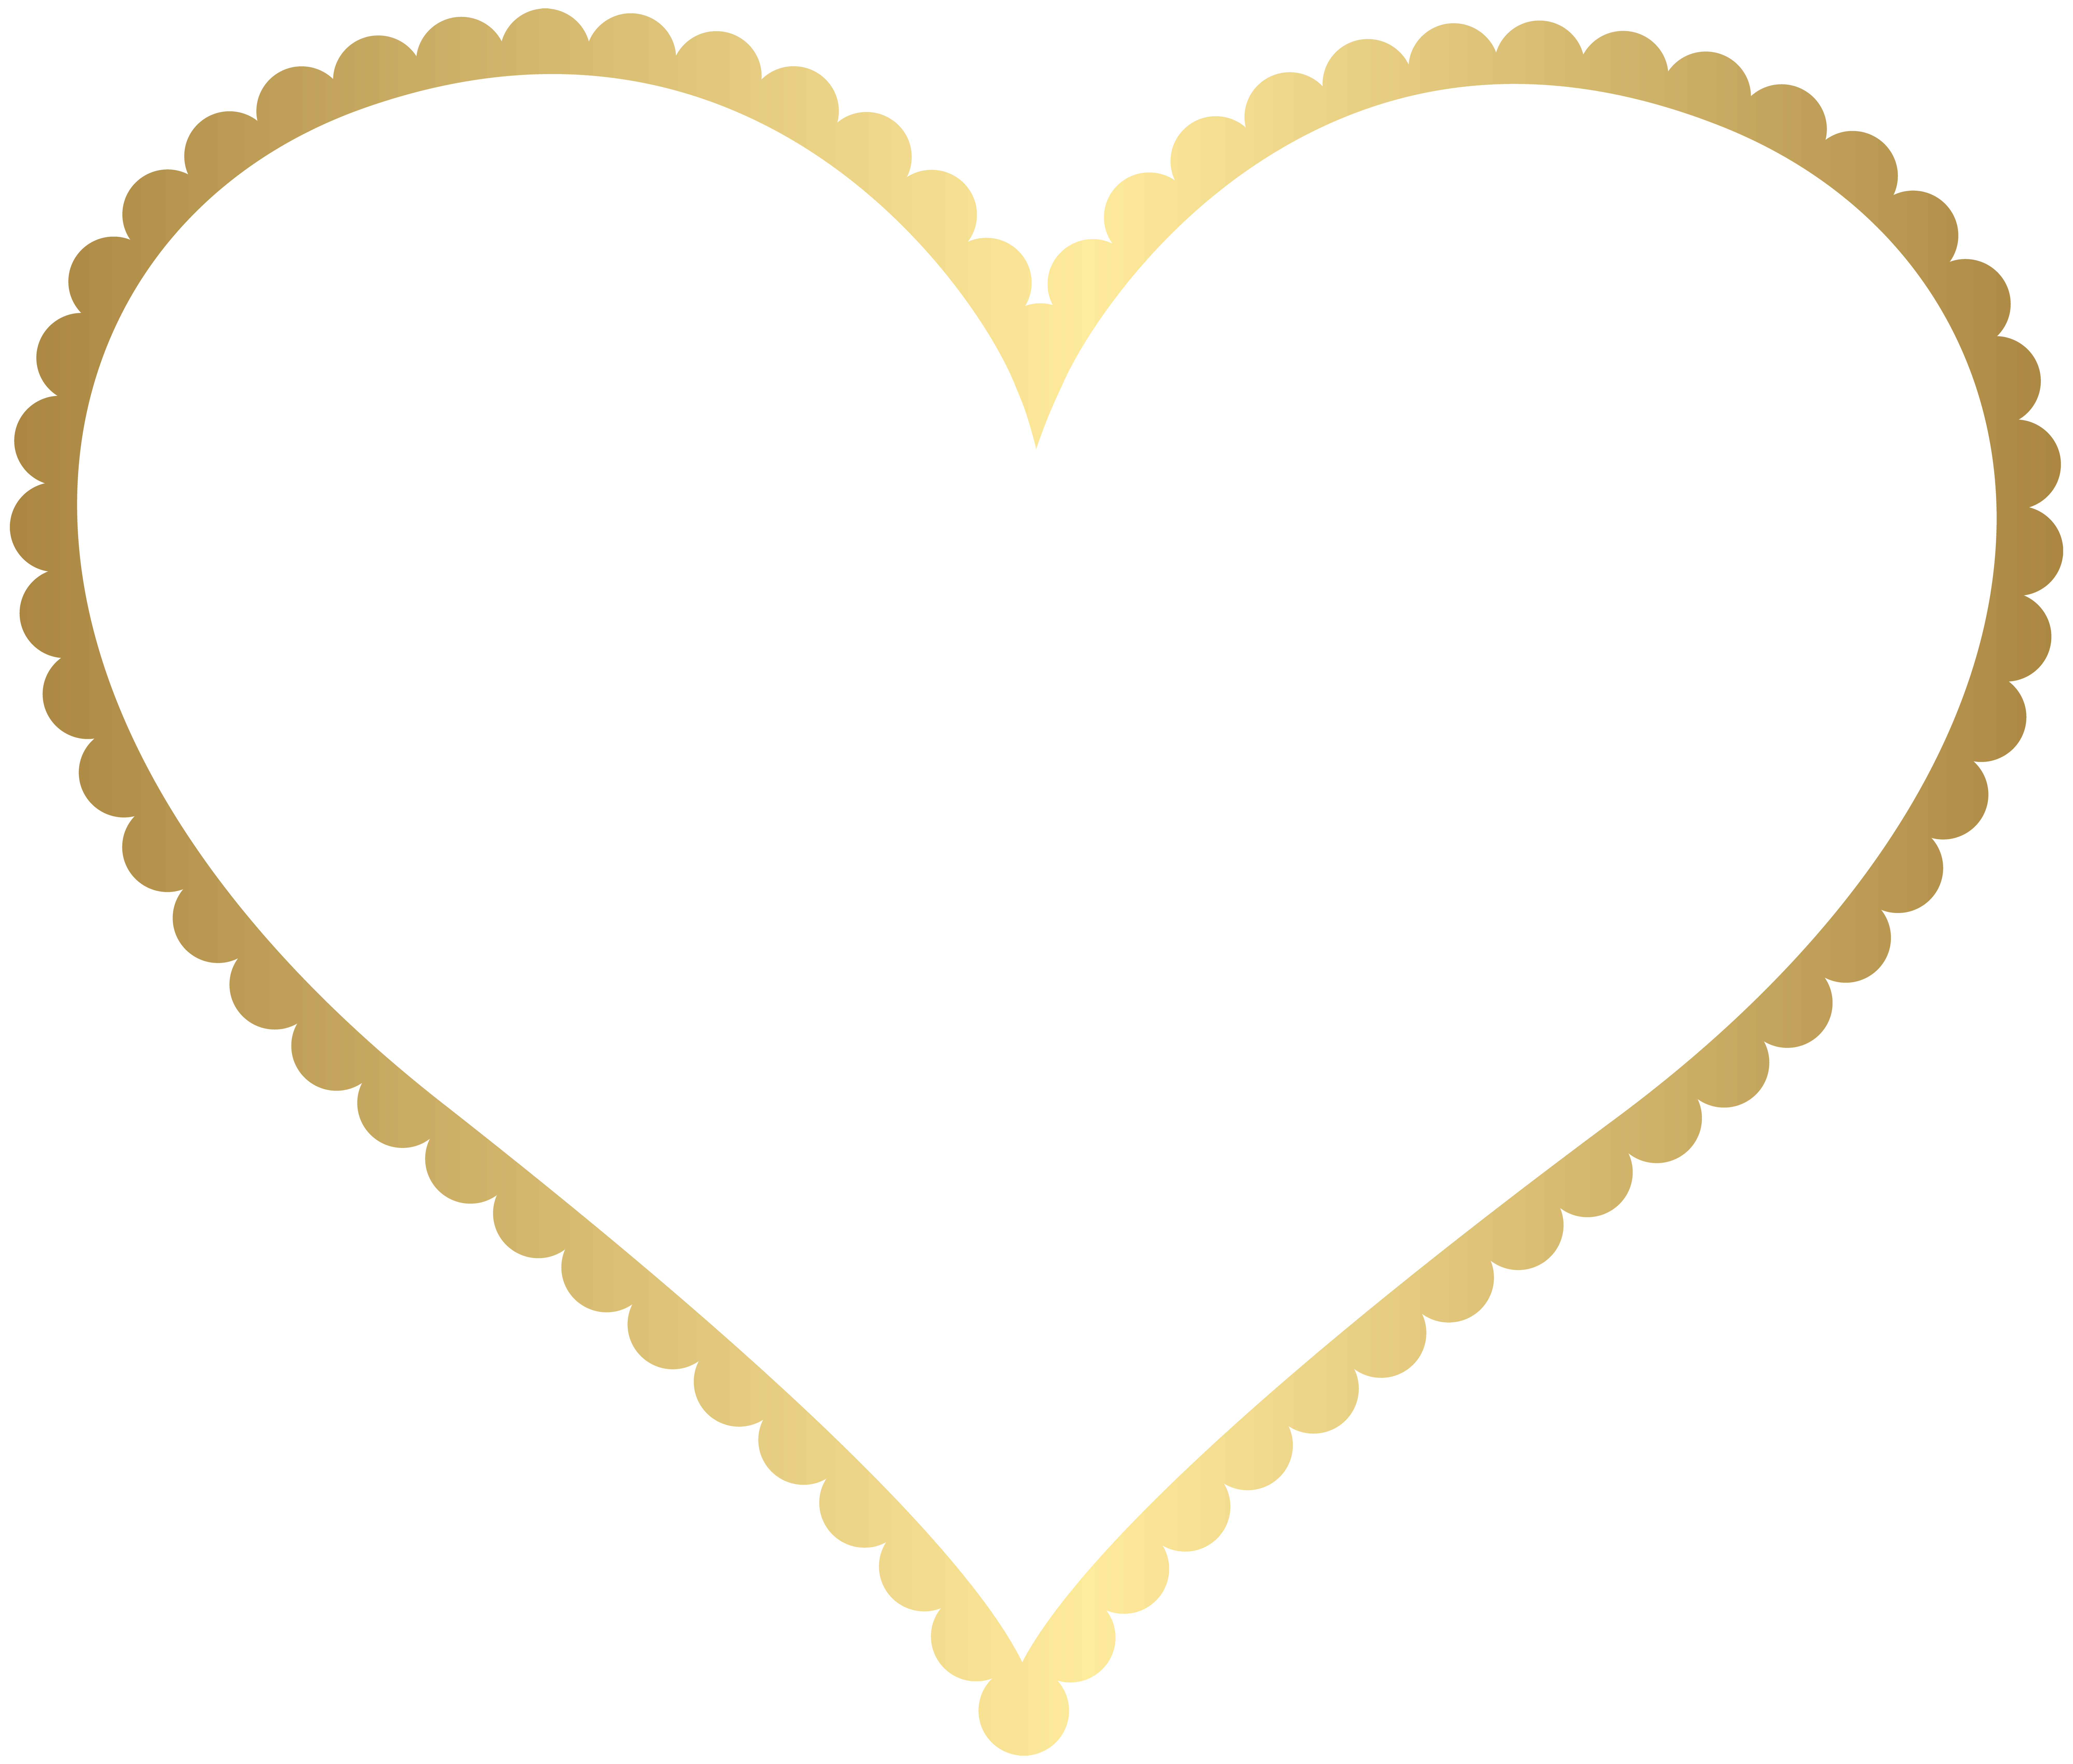 Gold Heart Border Frame Transparent Png Clip Art Gallery Yopriceville High Quality Images And Transparent Png Free Clip Art Heart Border Scrapbook Frames